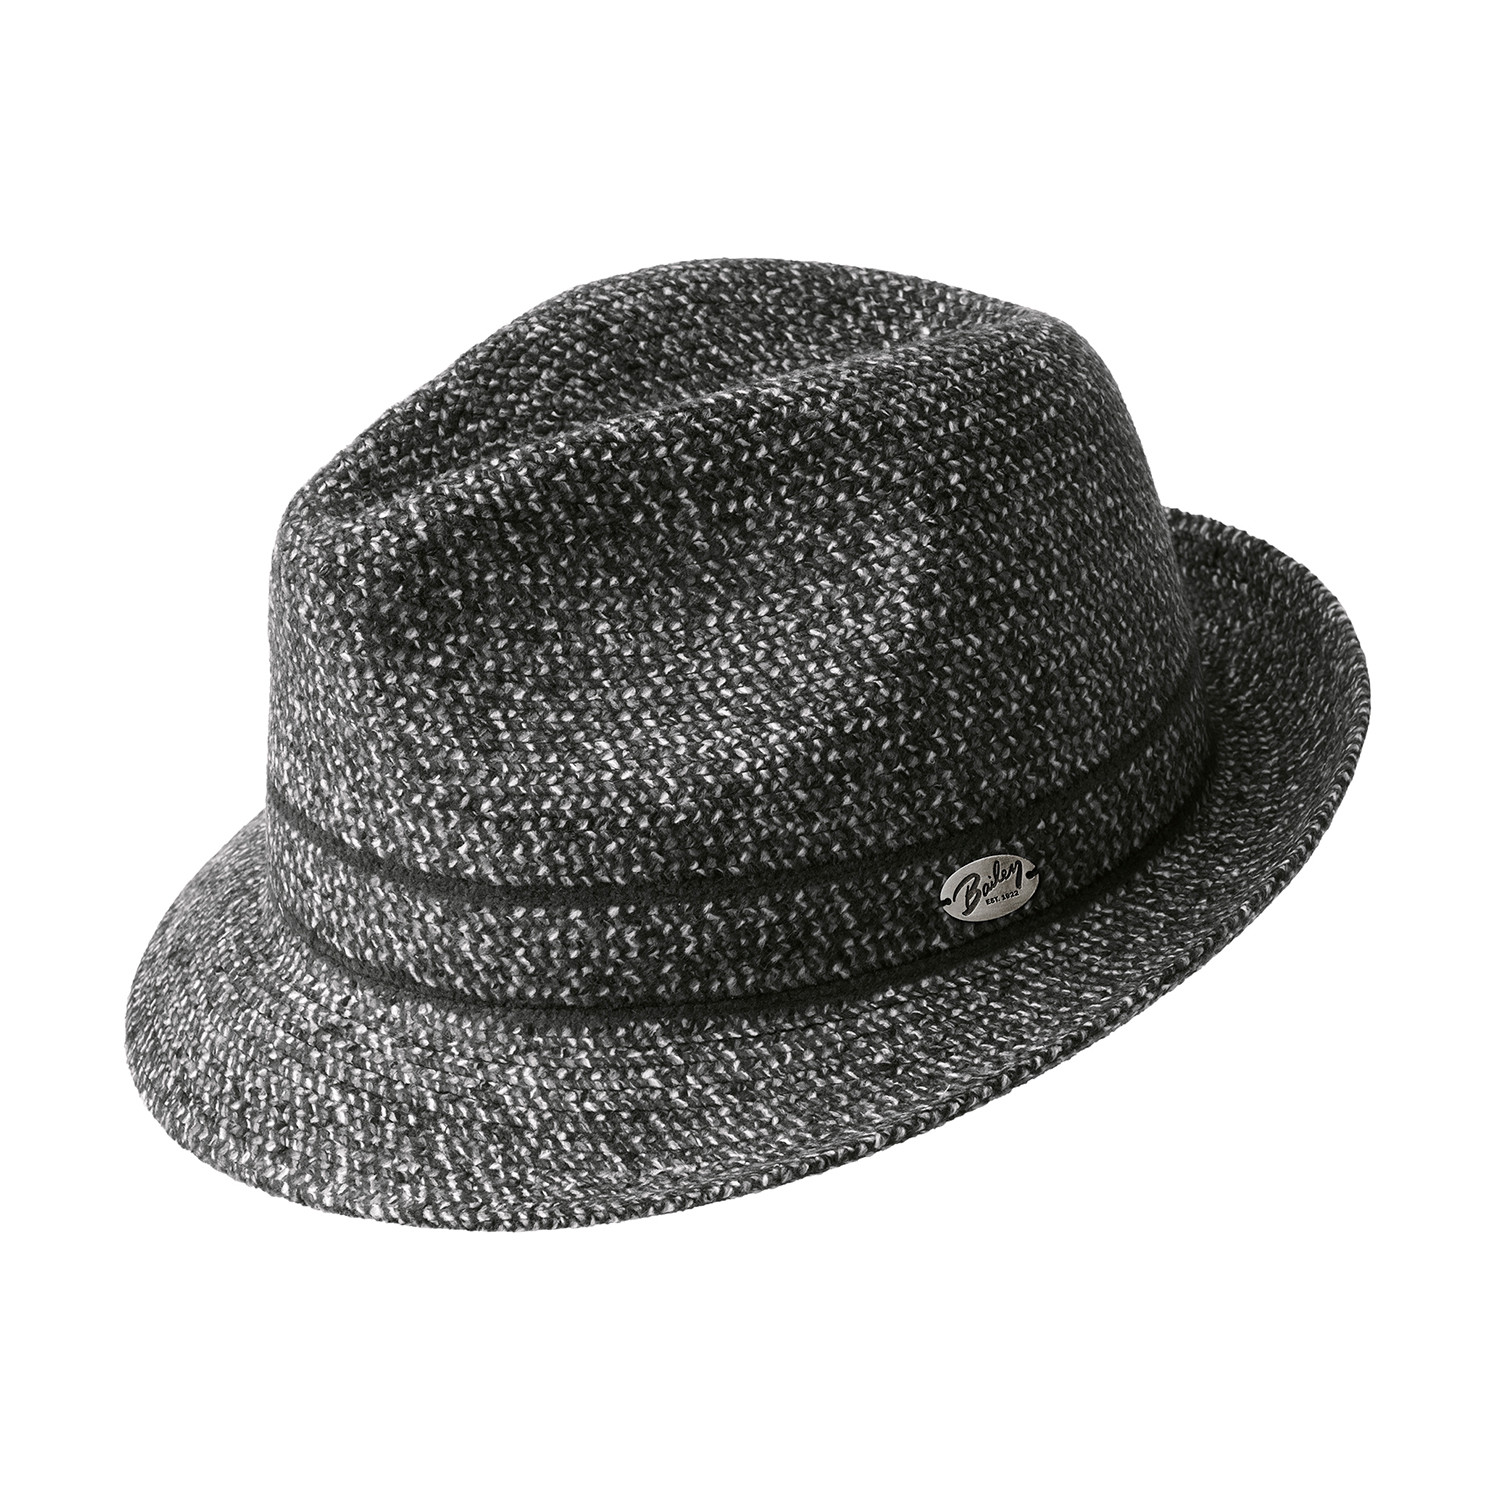 3f05addf80f Castro    Black Melange (Large) - Bailey Hat Company - Touch of Modern